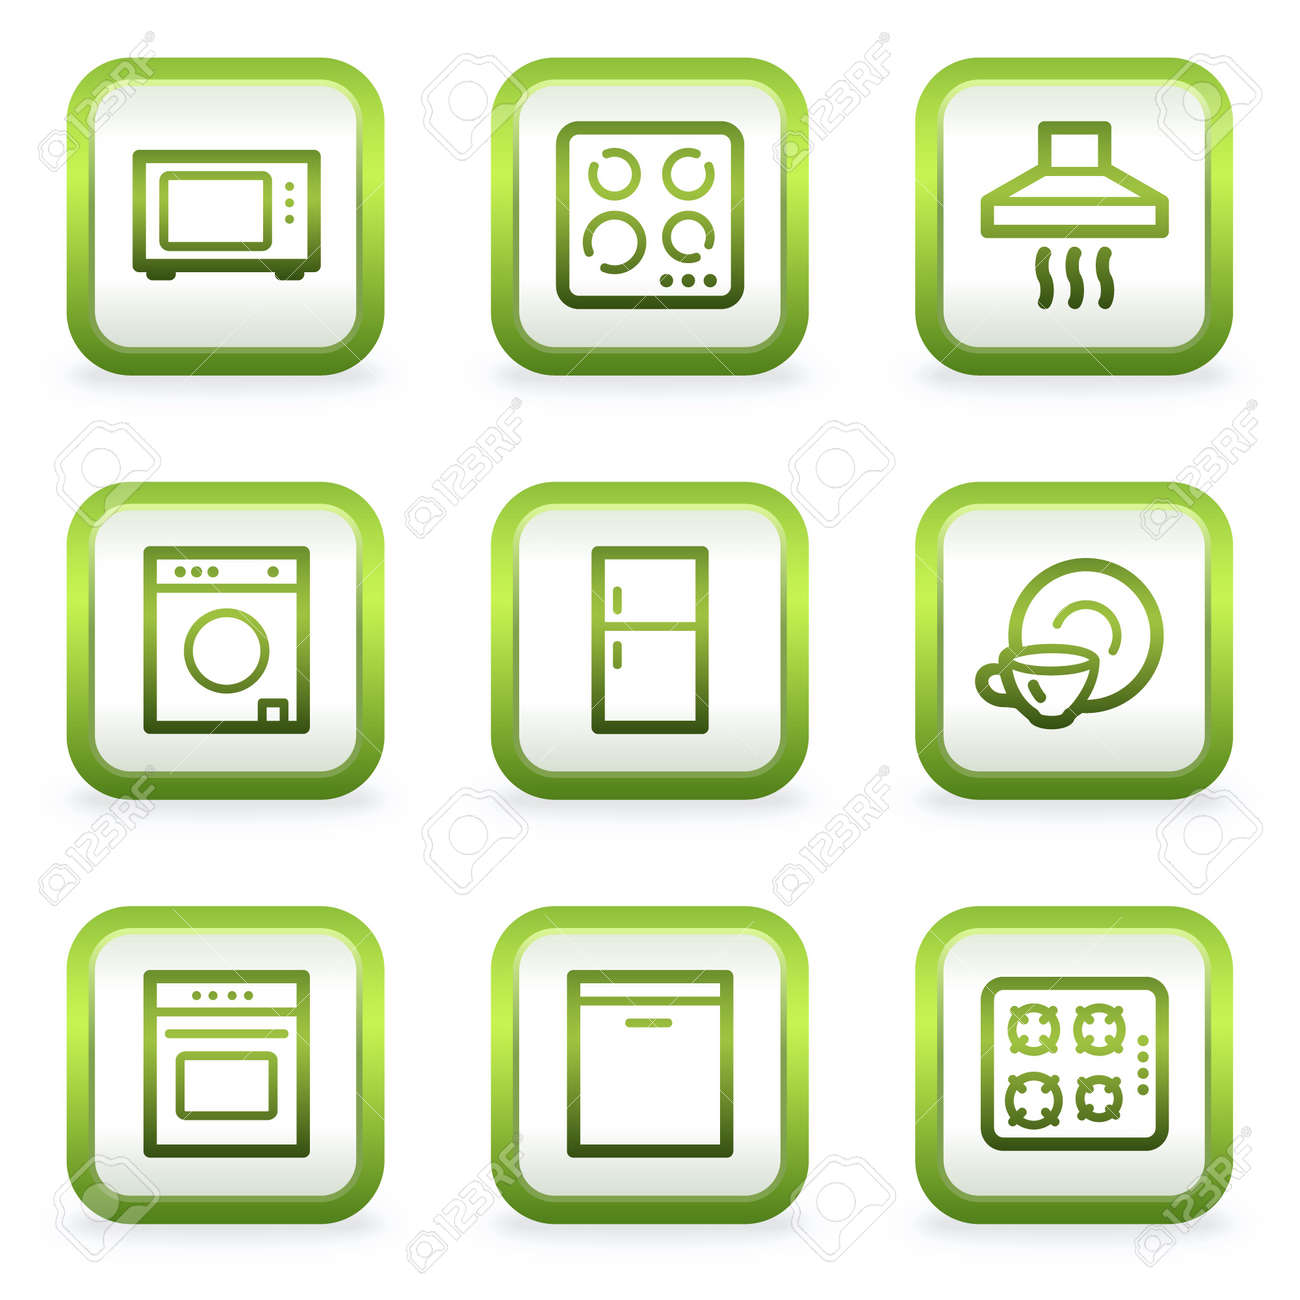 Home appliances web icons, square buttons, green contour Stock Vector - 6622409